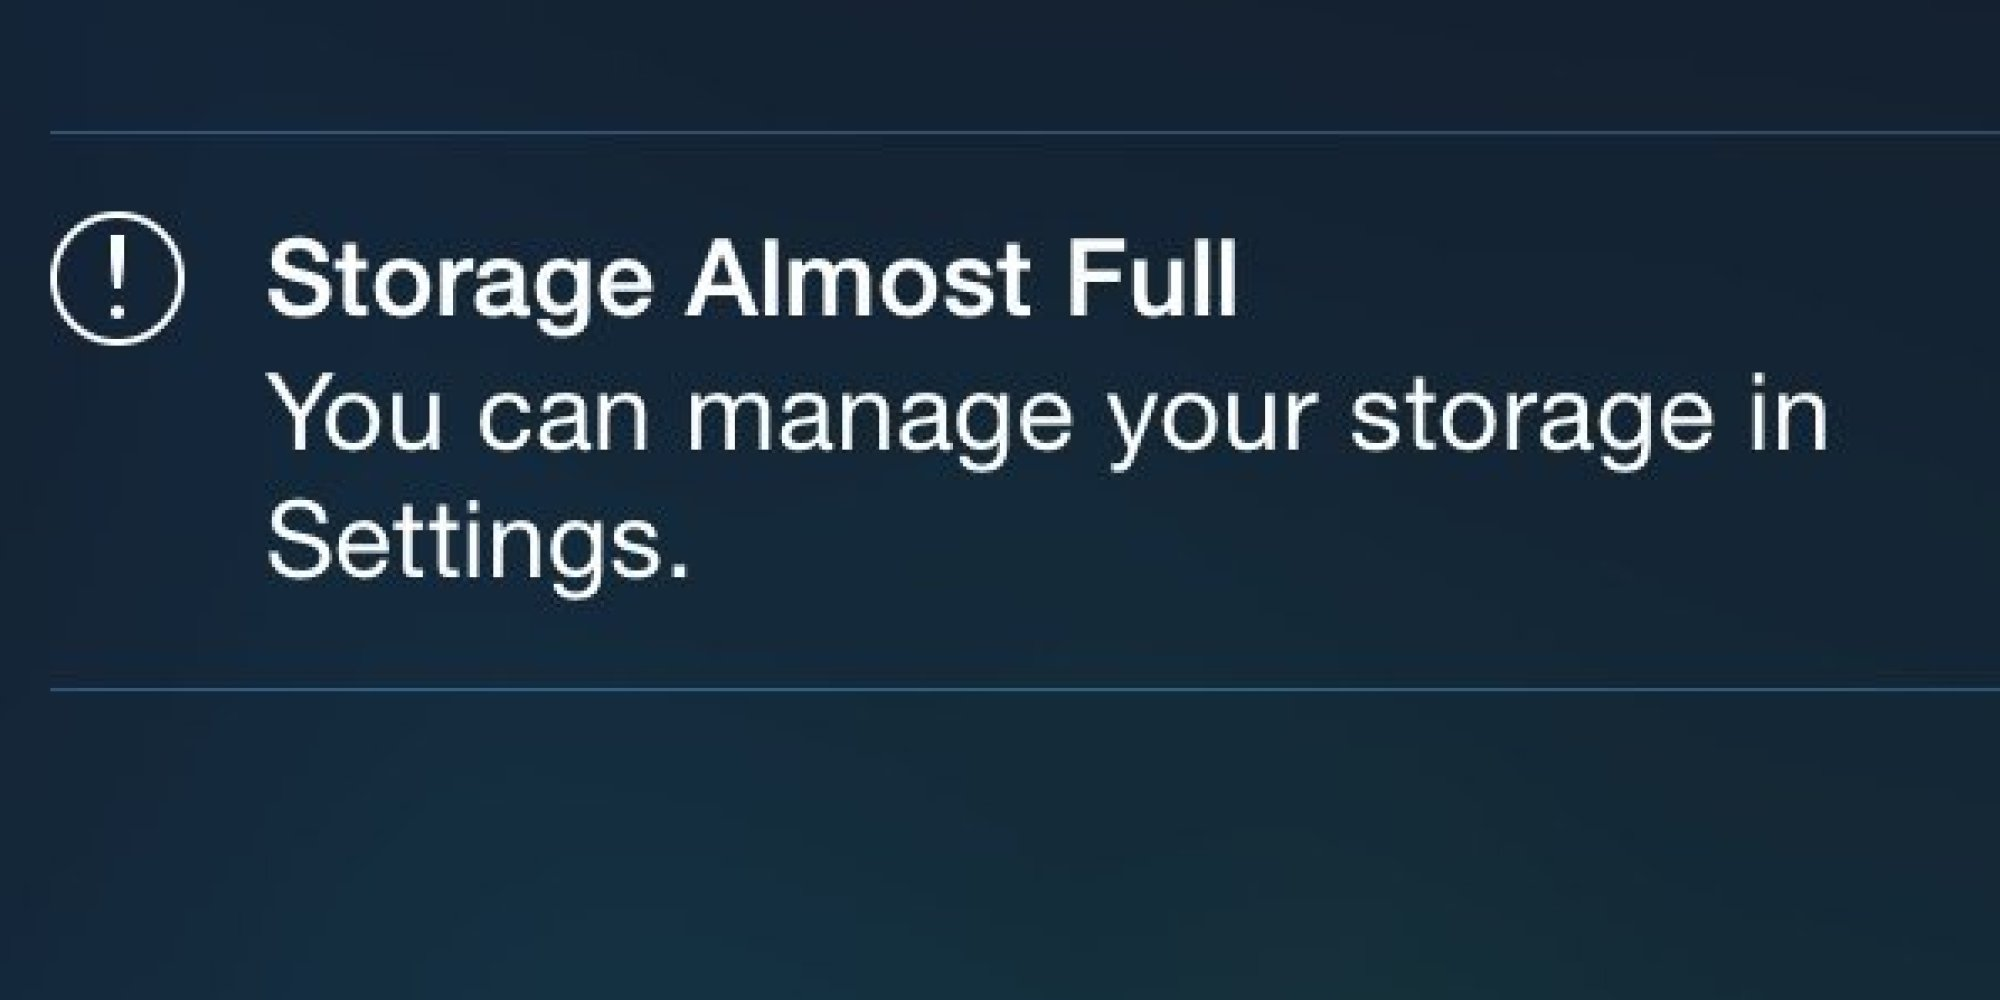 iphone storage full message if your iphone is tight on storage space try the new ios 15470